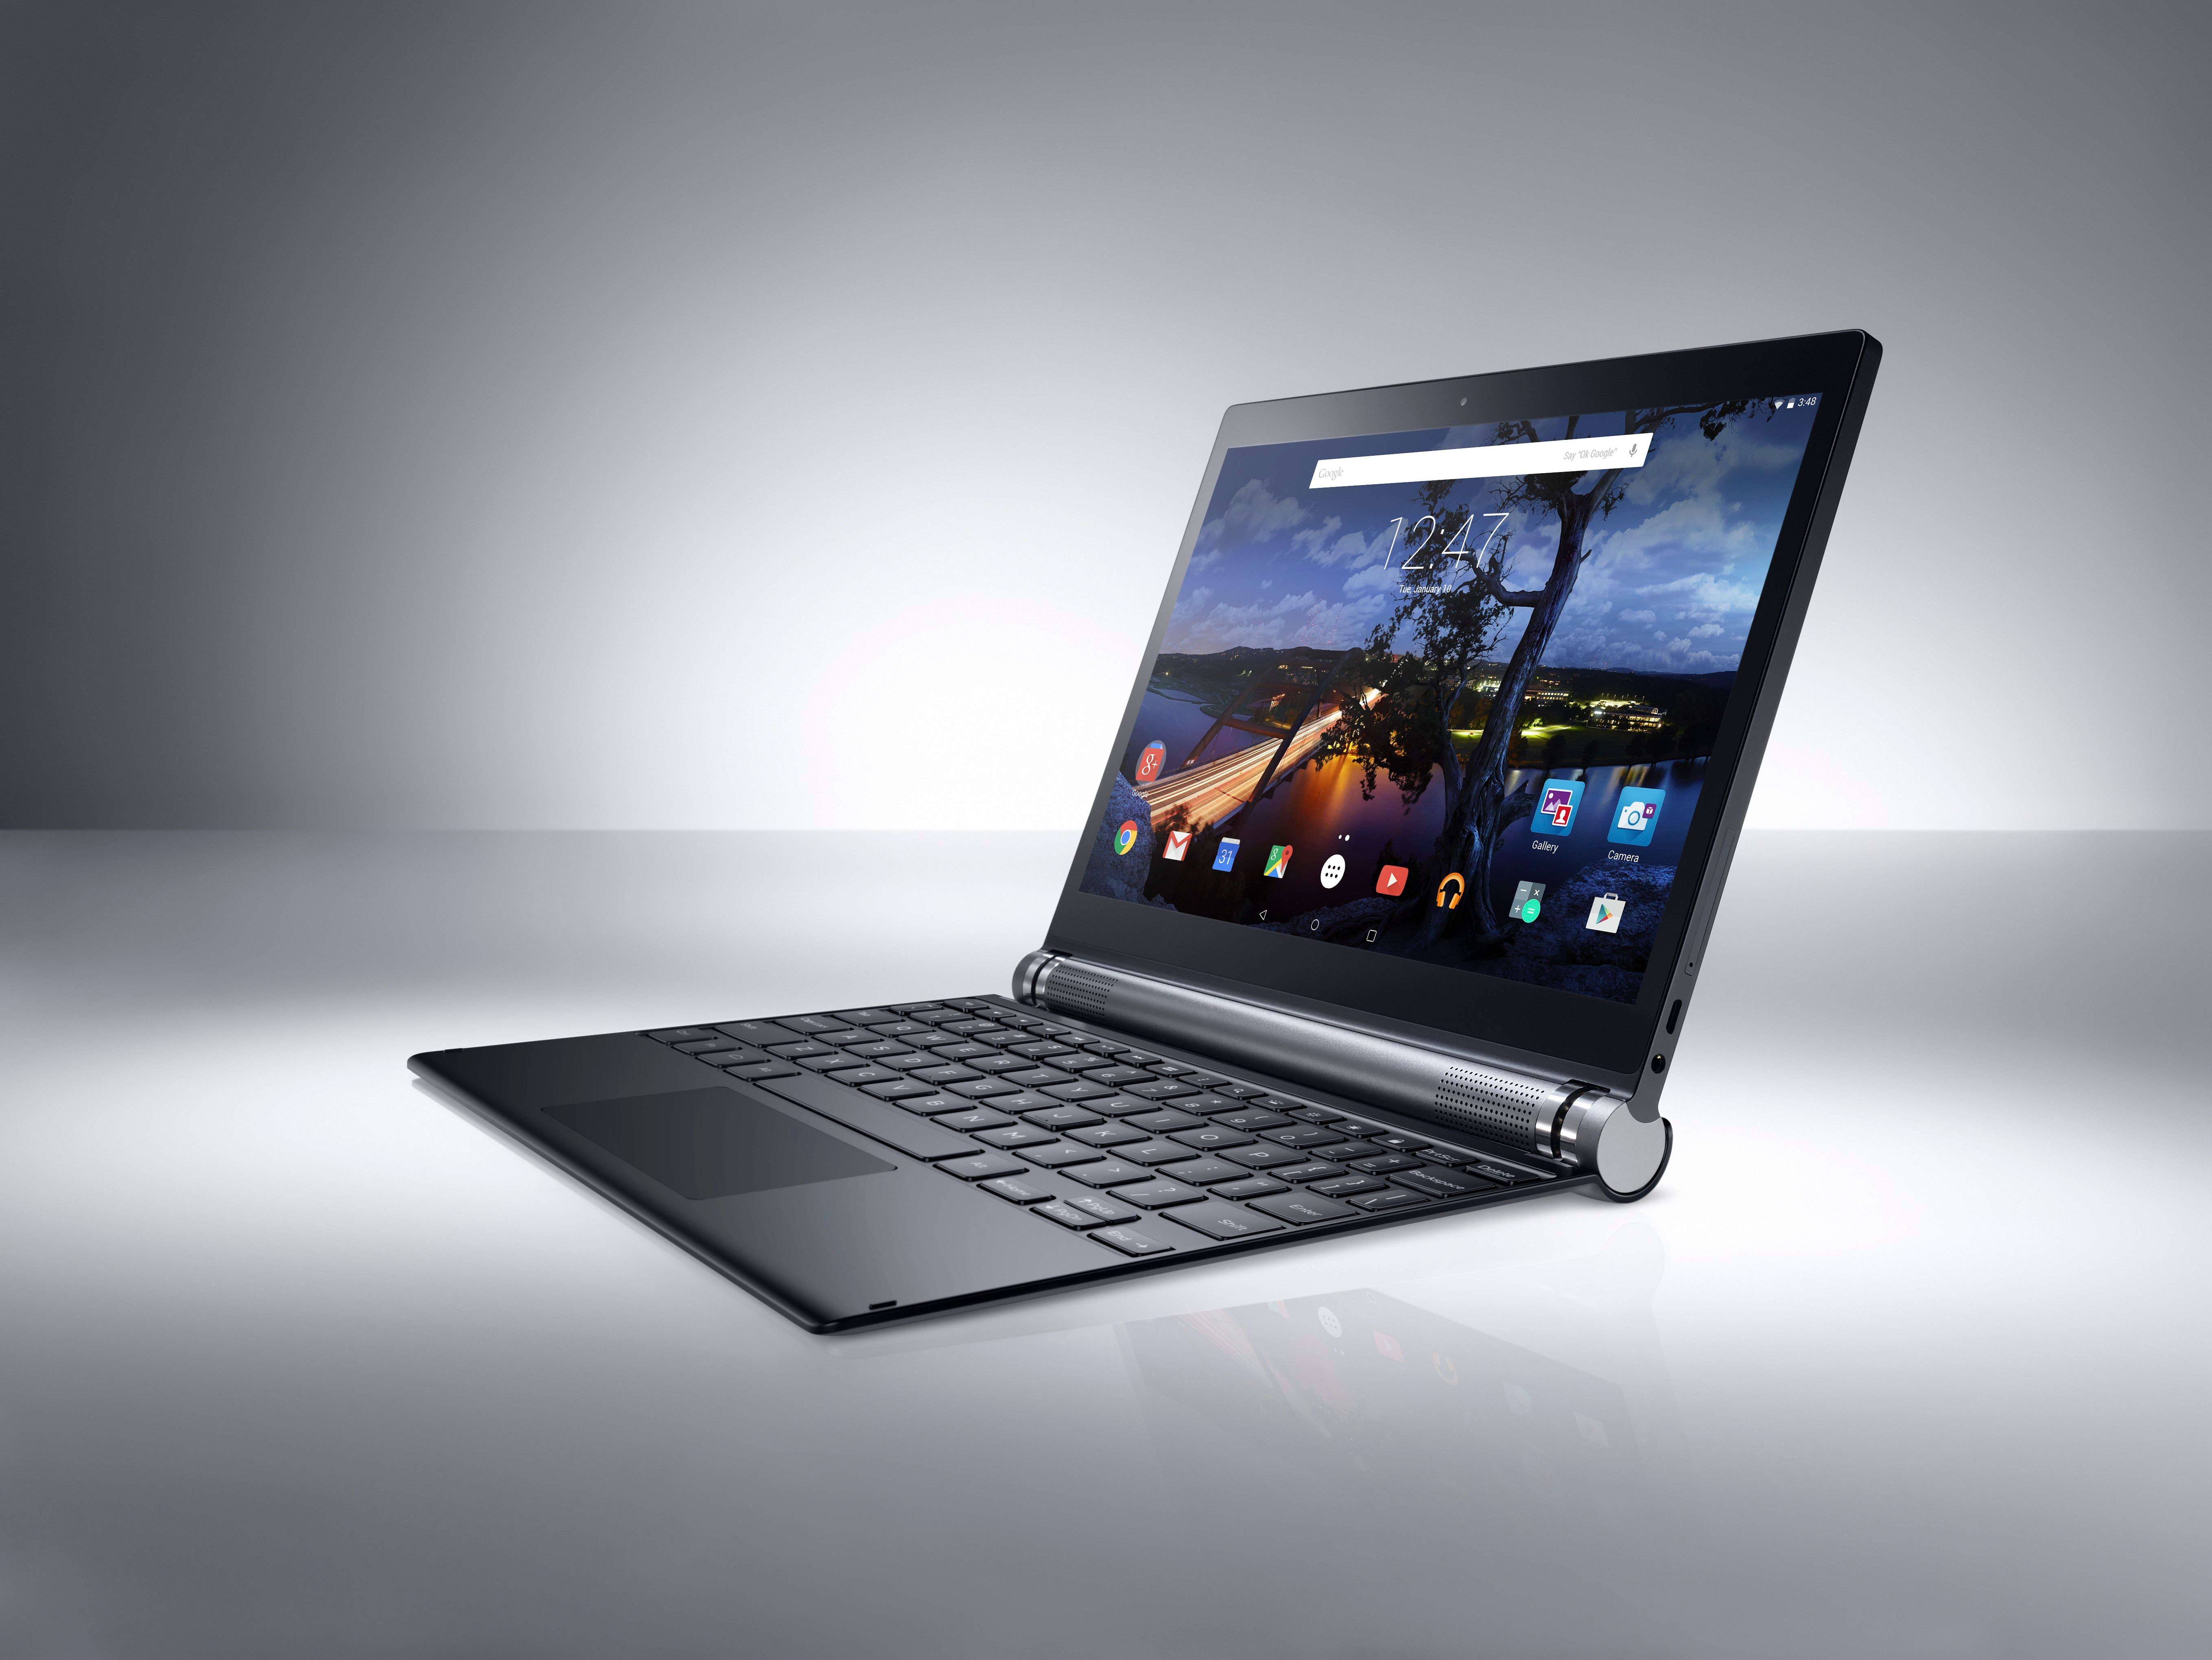 Dell Venue 10 7000 Series (Model 7040, codename Eagle Peak) Android tablet computer with keyboard attachment, shown on a gray beauty background in horizontal/landscape position.